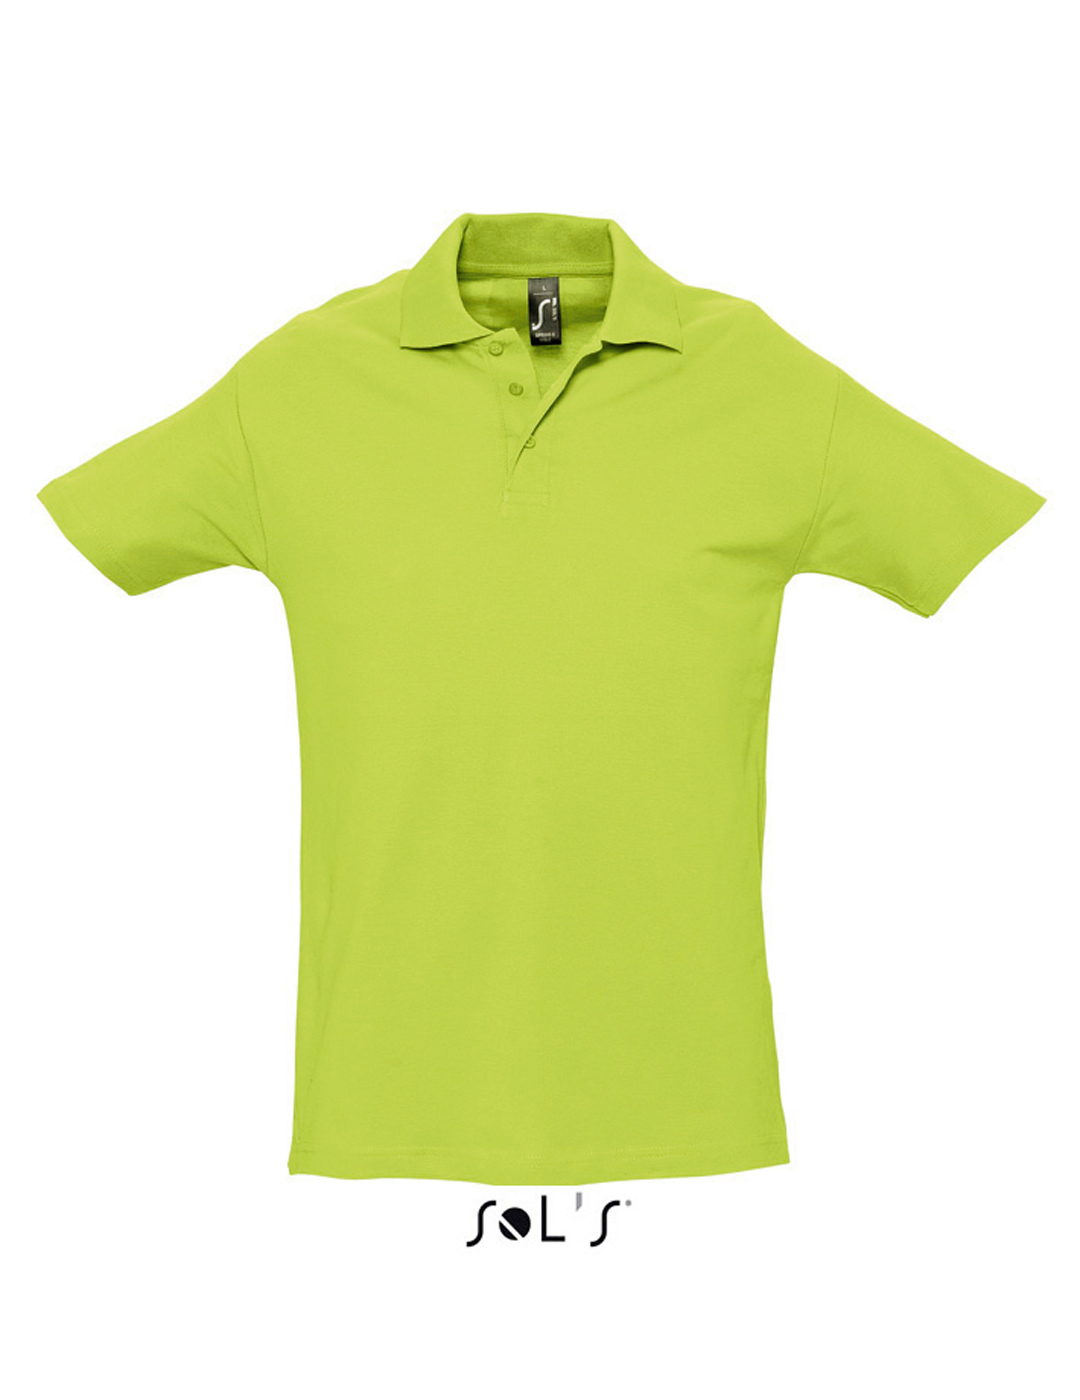 Spring ii 11362 apple green a